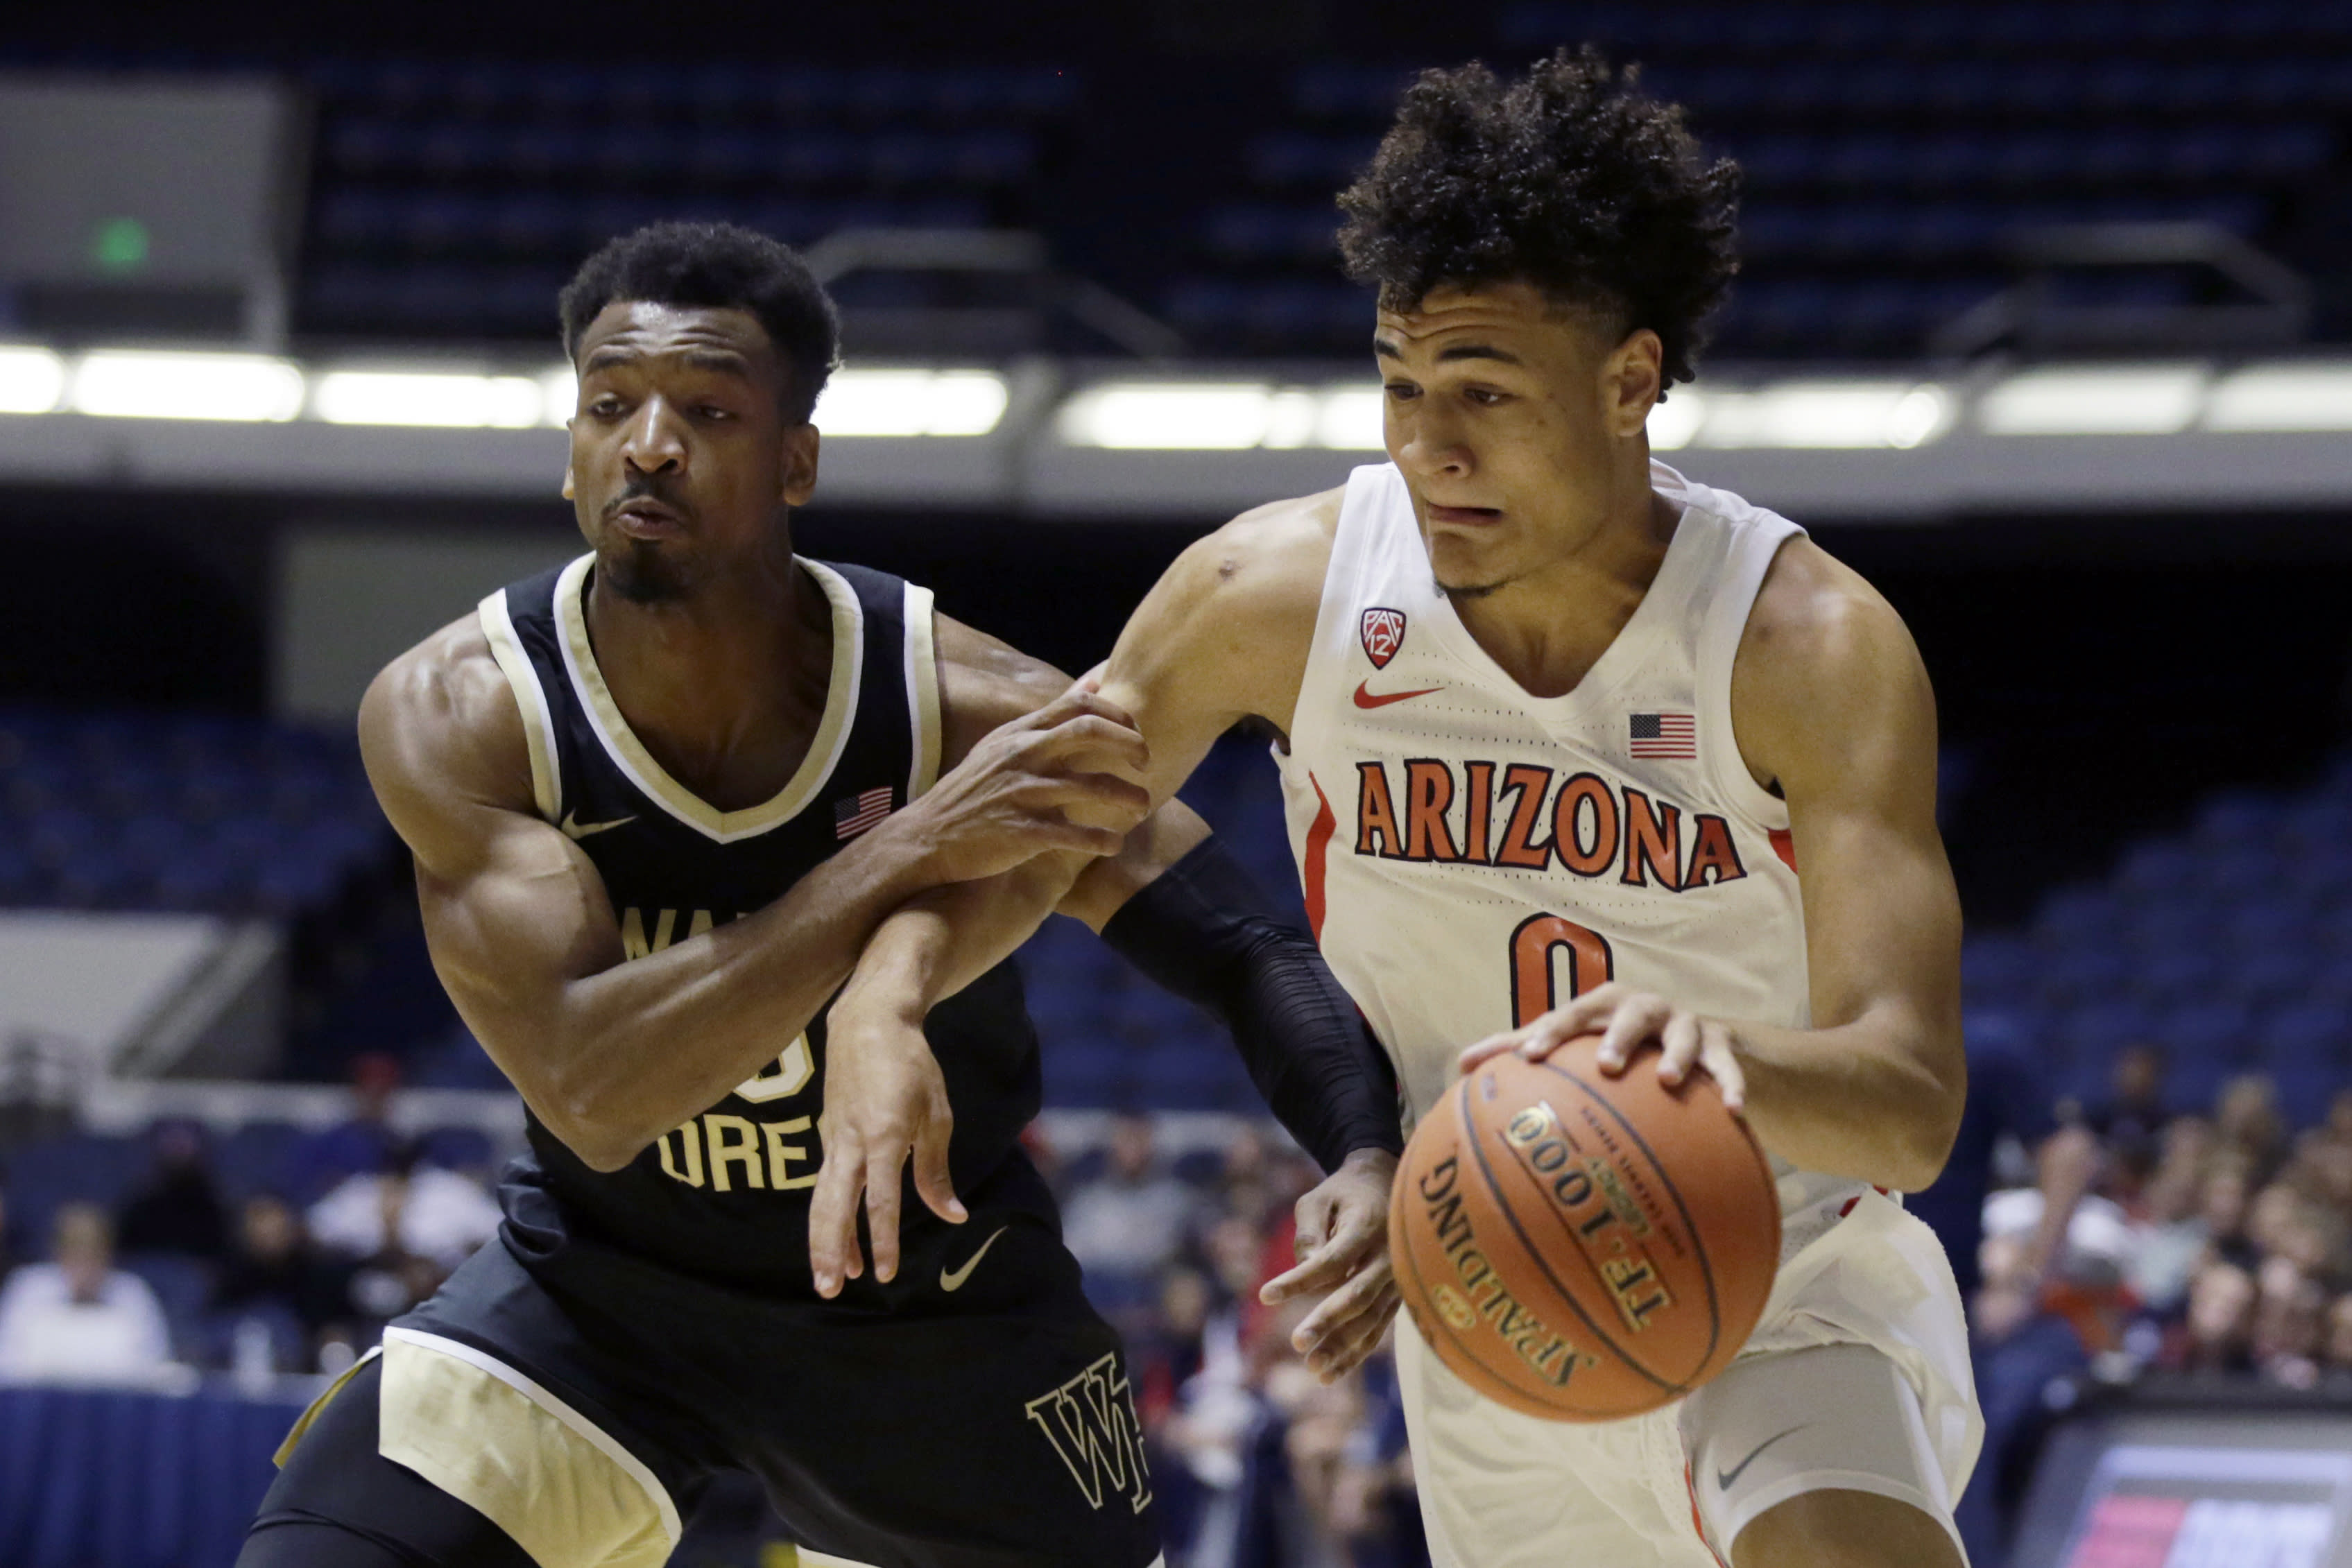 Arizona guard Josh Green, right, drives to the basket against Wake Forest guard Andrien White during the first half of an NCAA college basketball game at the Wooden Legacy tournament in Anaheim, Calif., Sunday, Dec. 1, 2019. (AP Photo/Alex Gallardo)